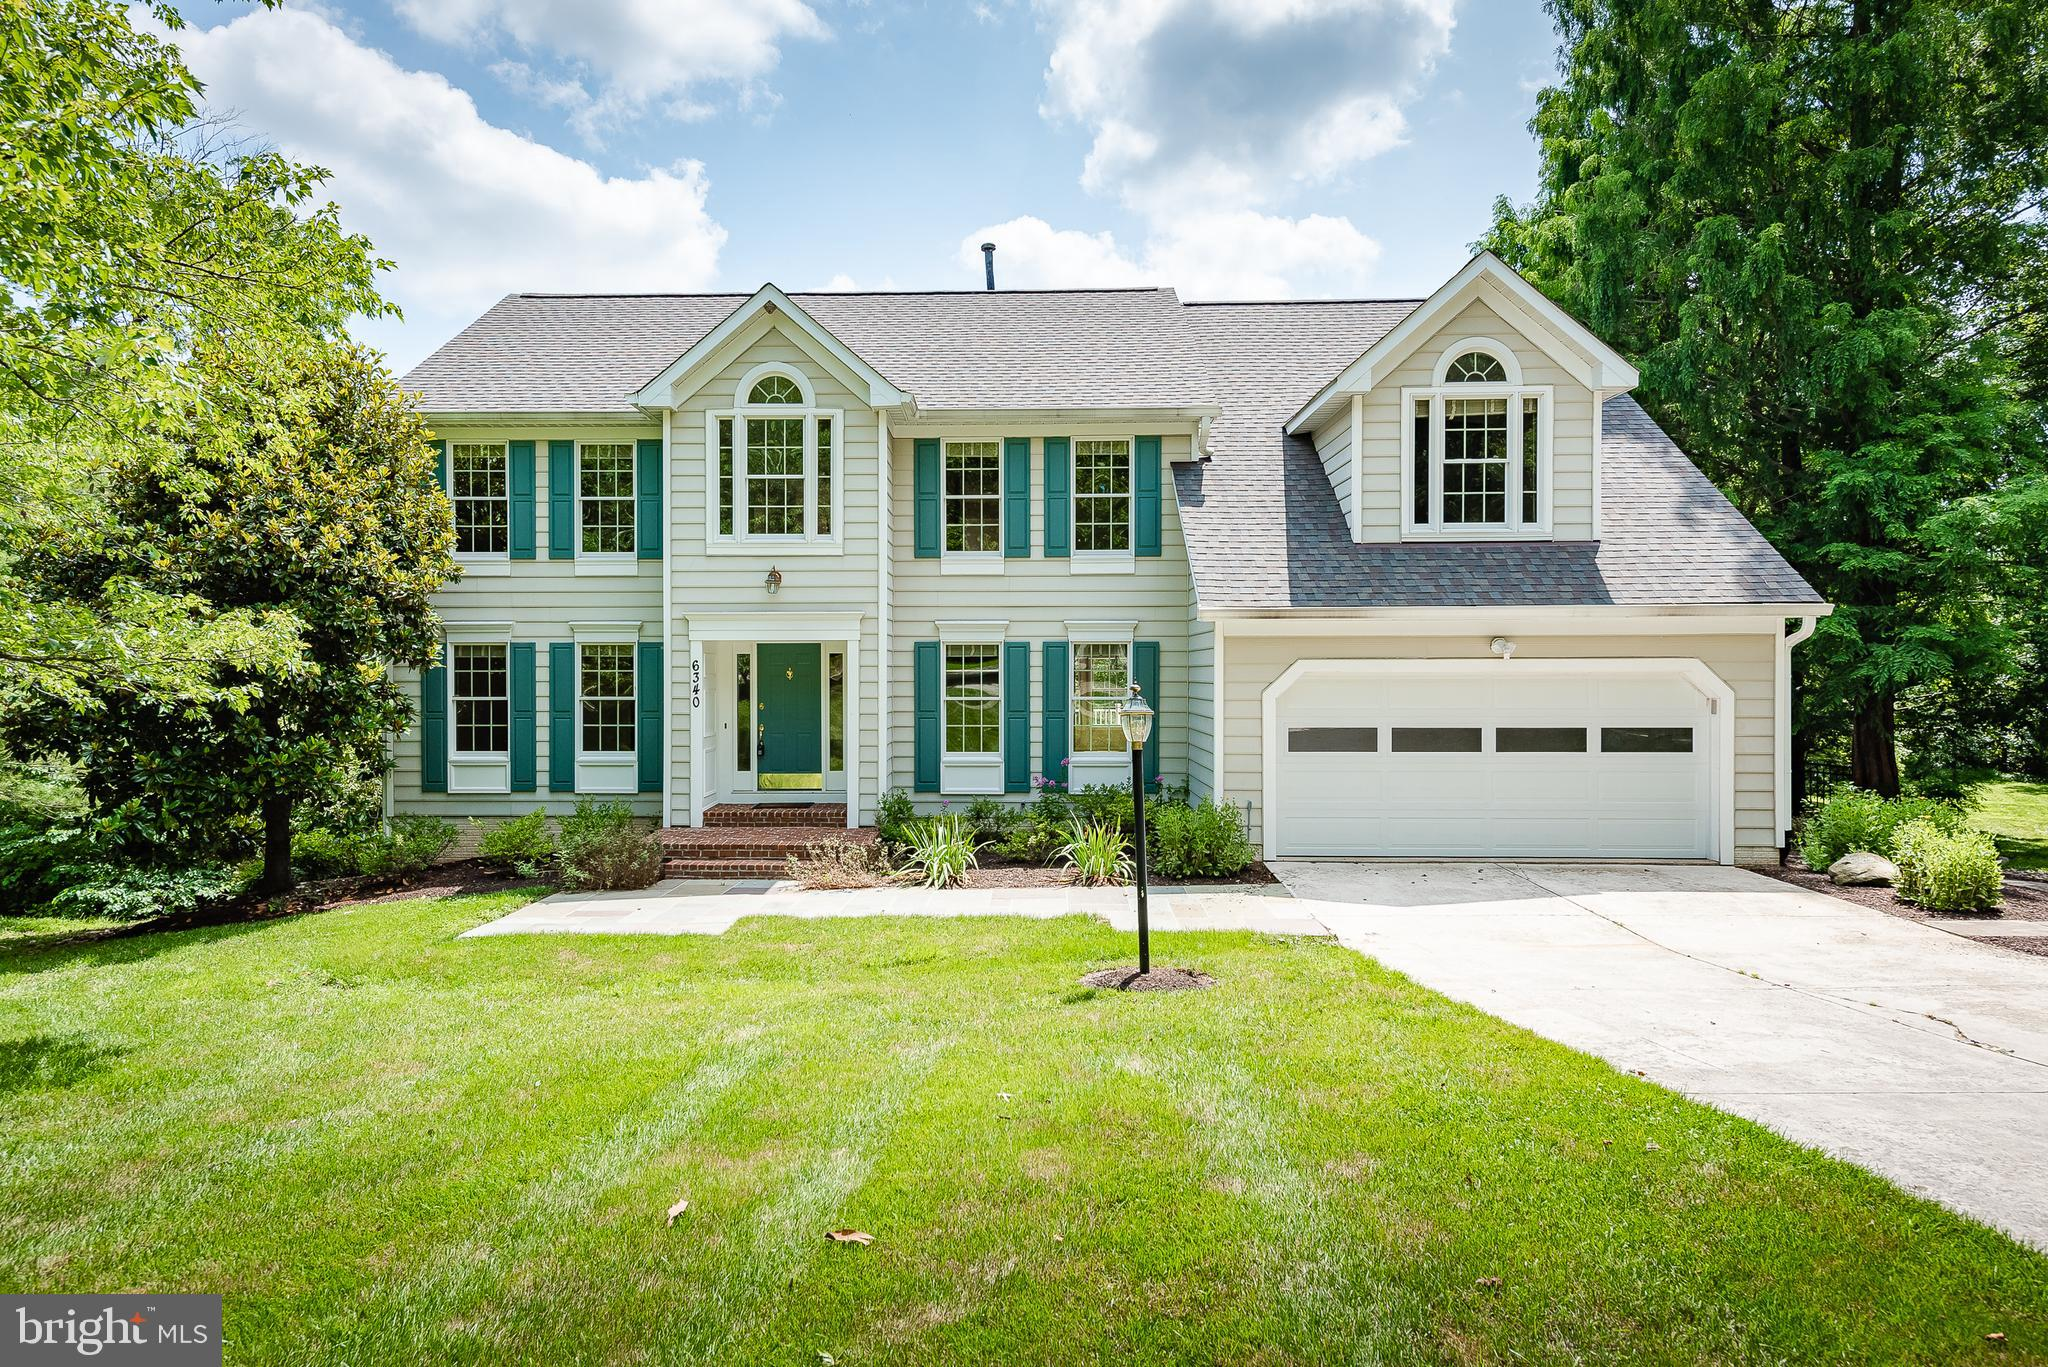 6340 DEPARTED SUNSET LANE, COLUMBIA, MD 21044